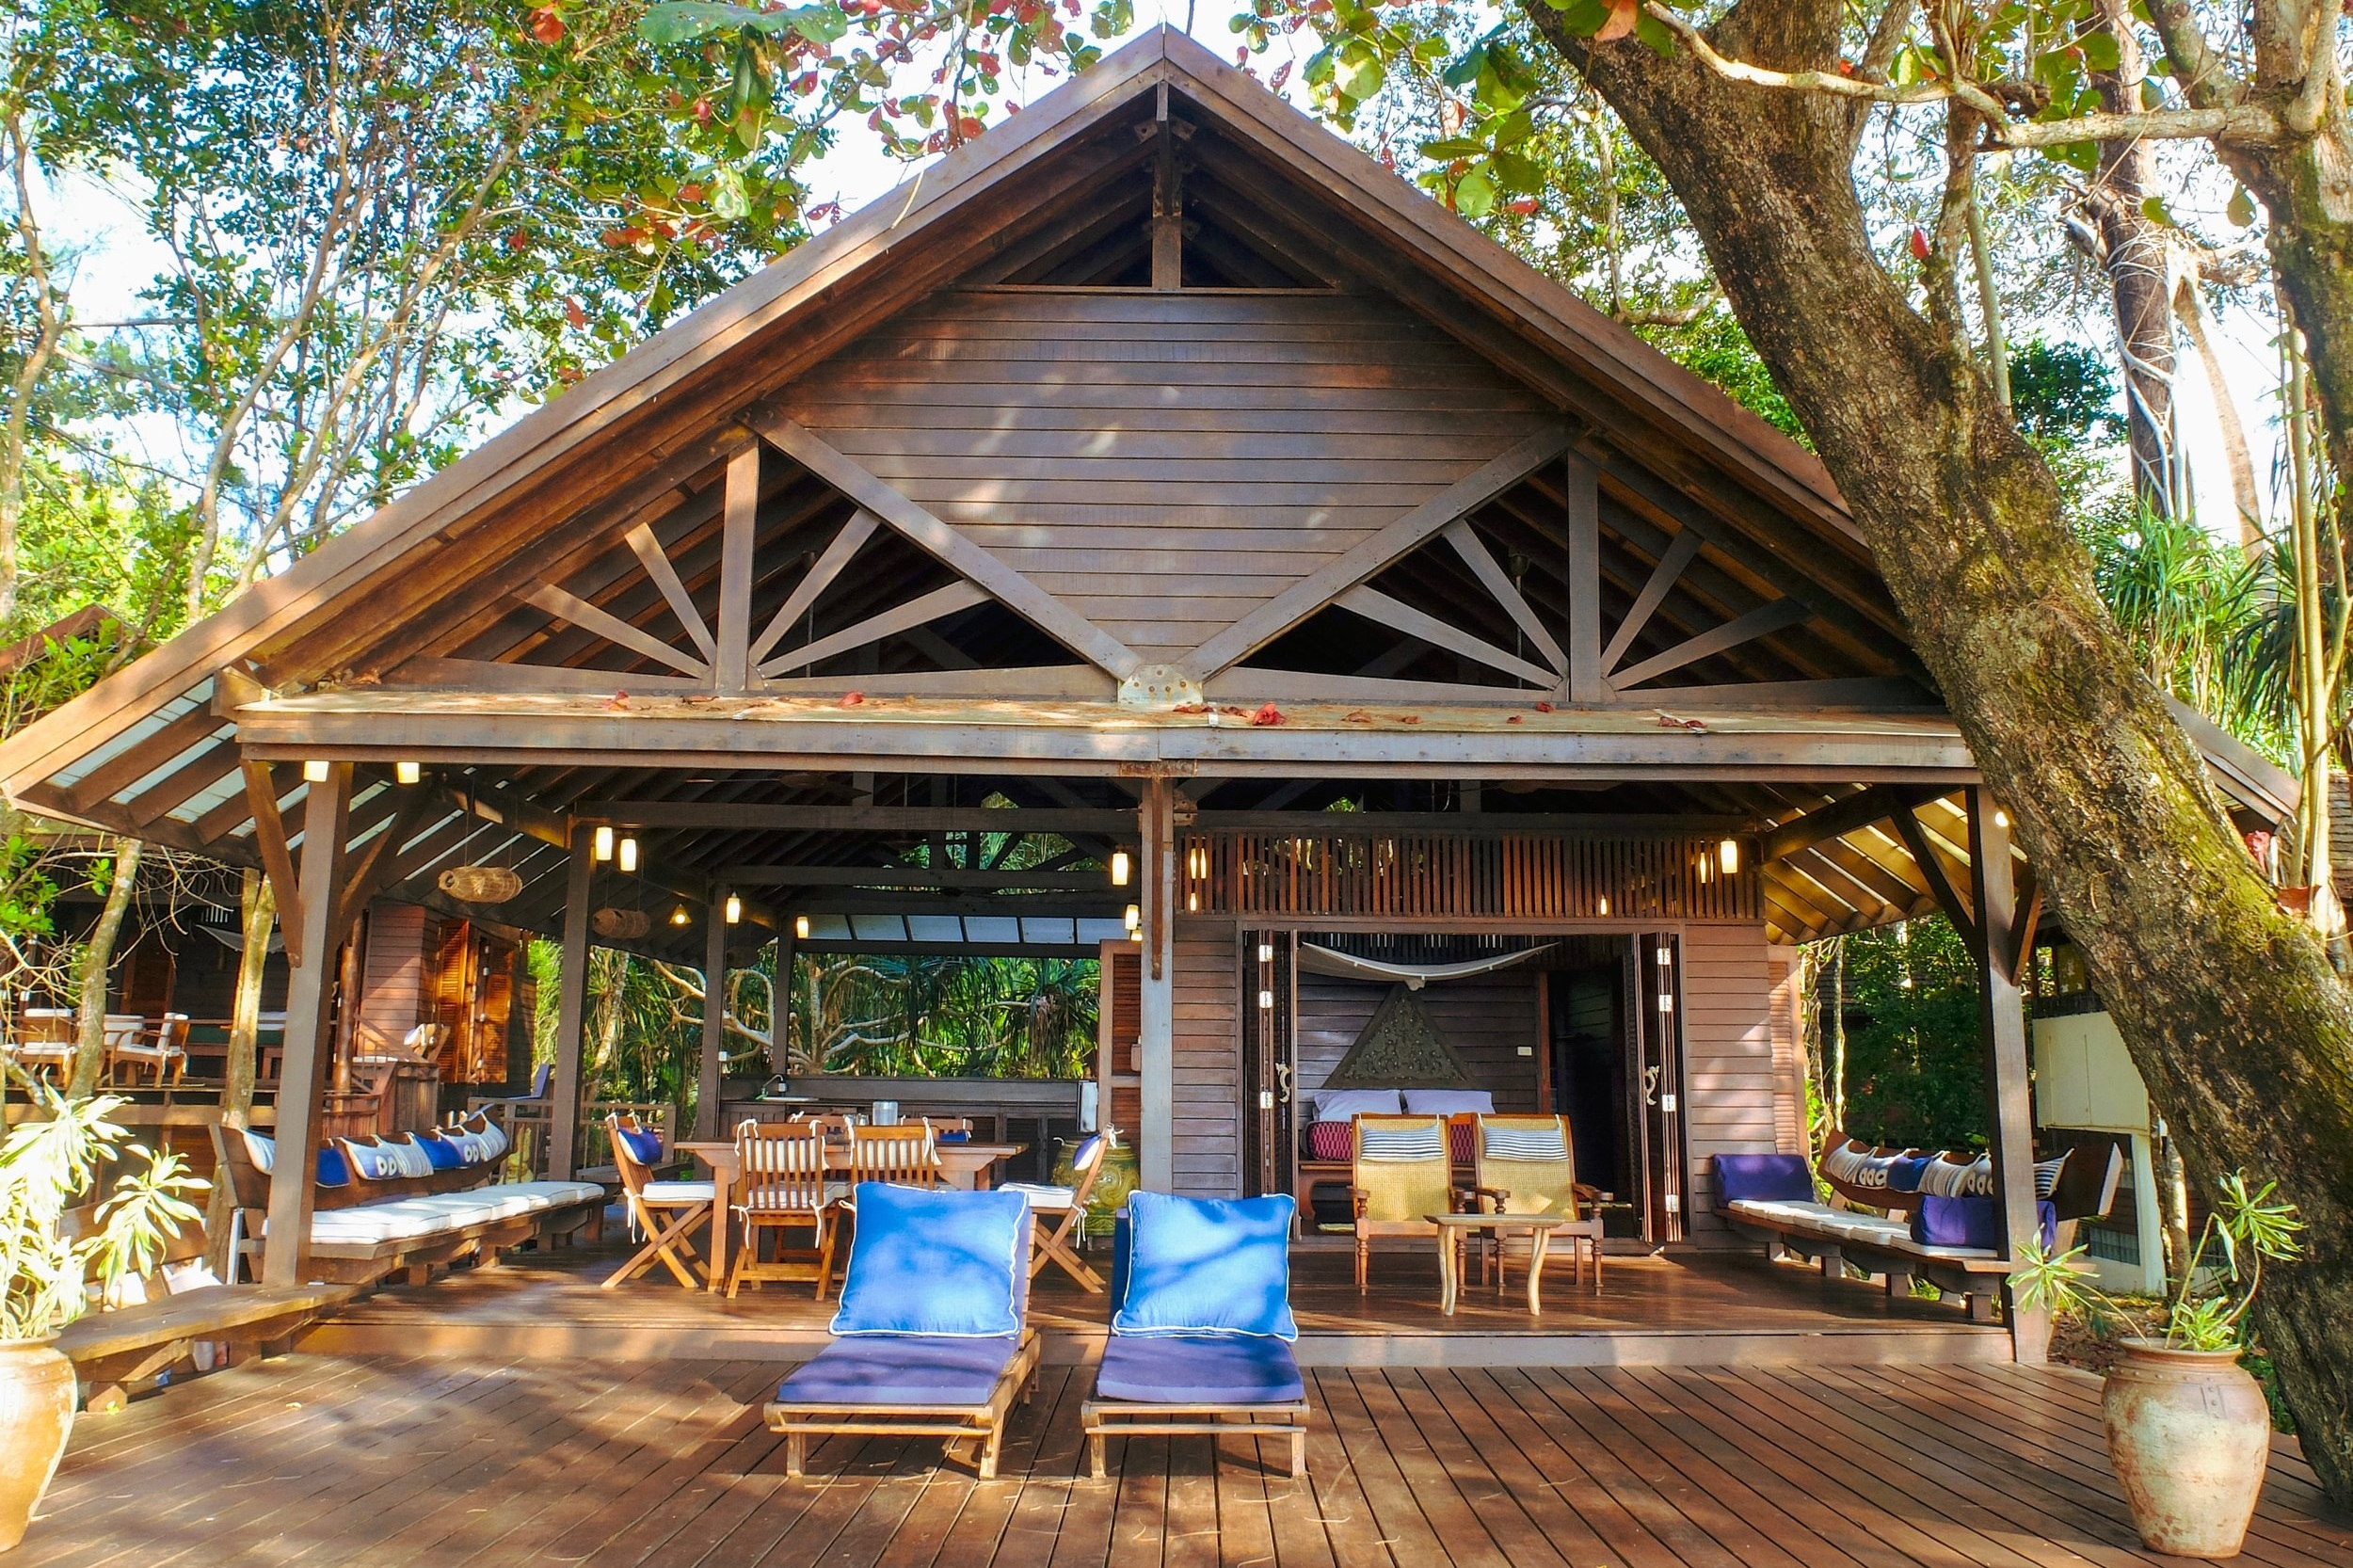 baan mangorn - sleeps 6 people, 6 mns to clubhouse